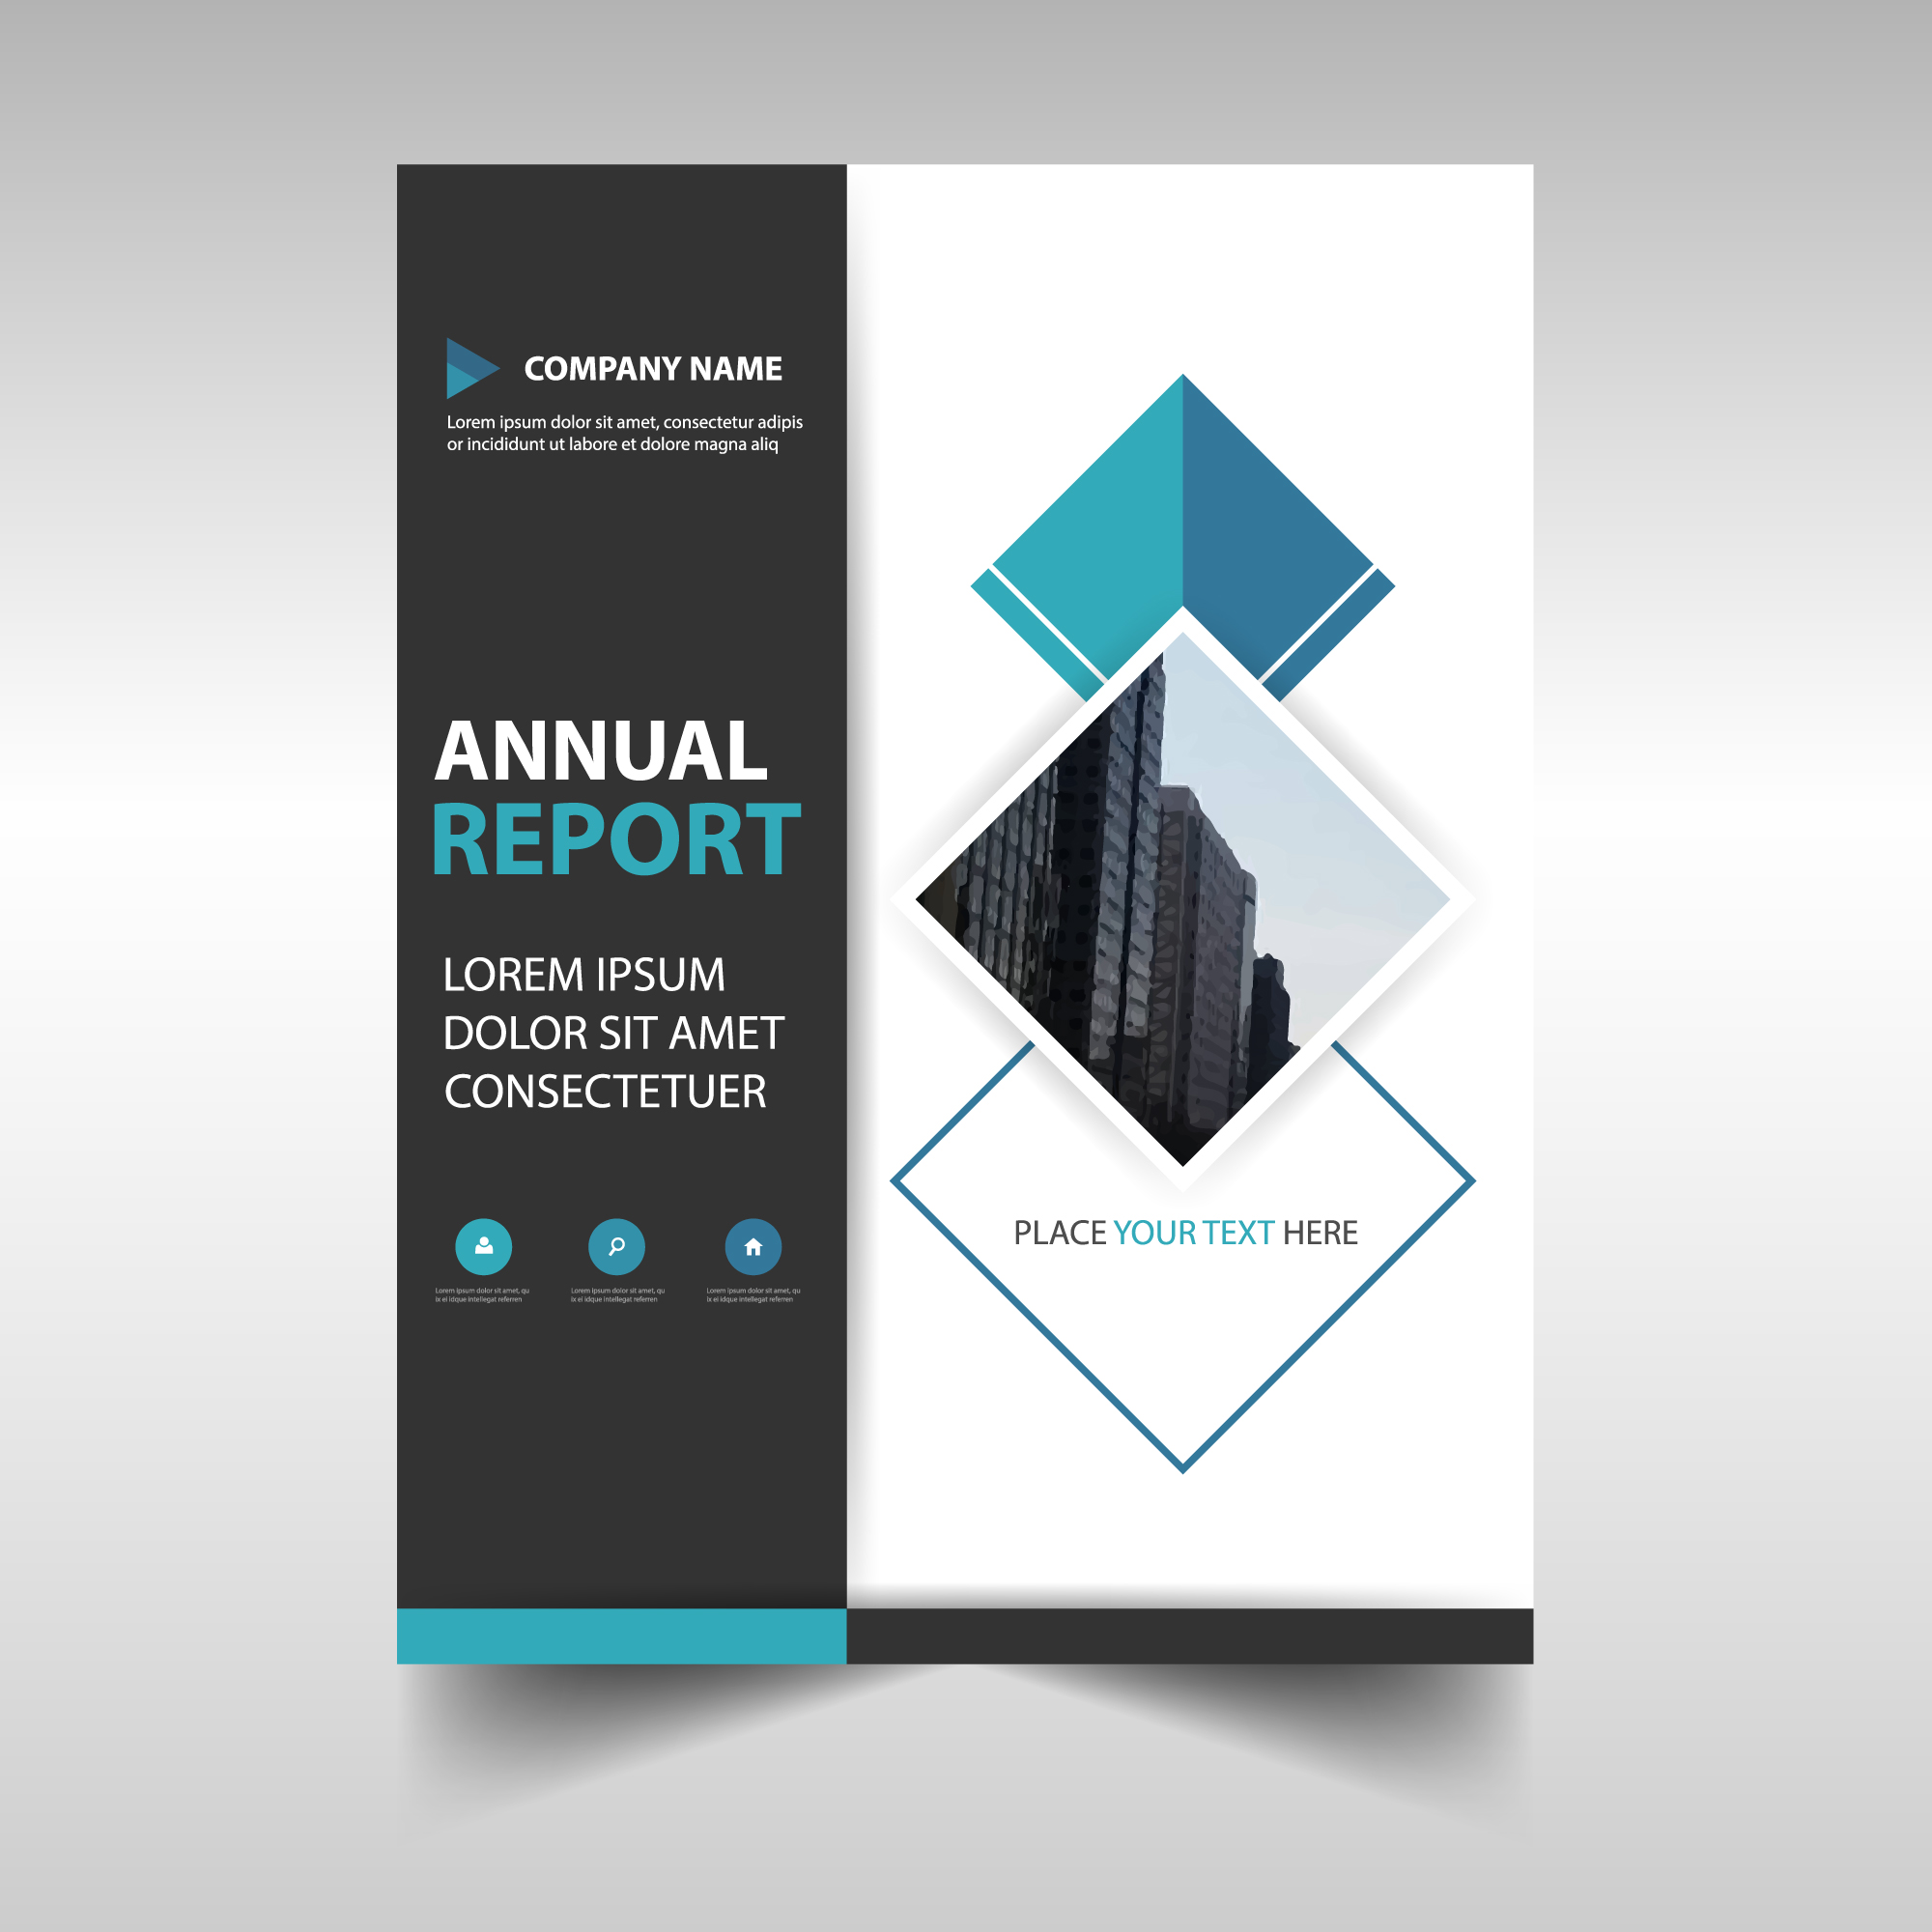 Abstract corporate annual report template